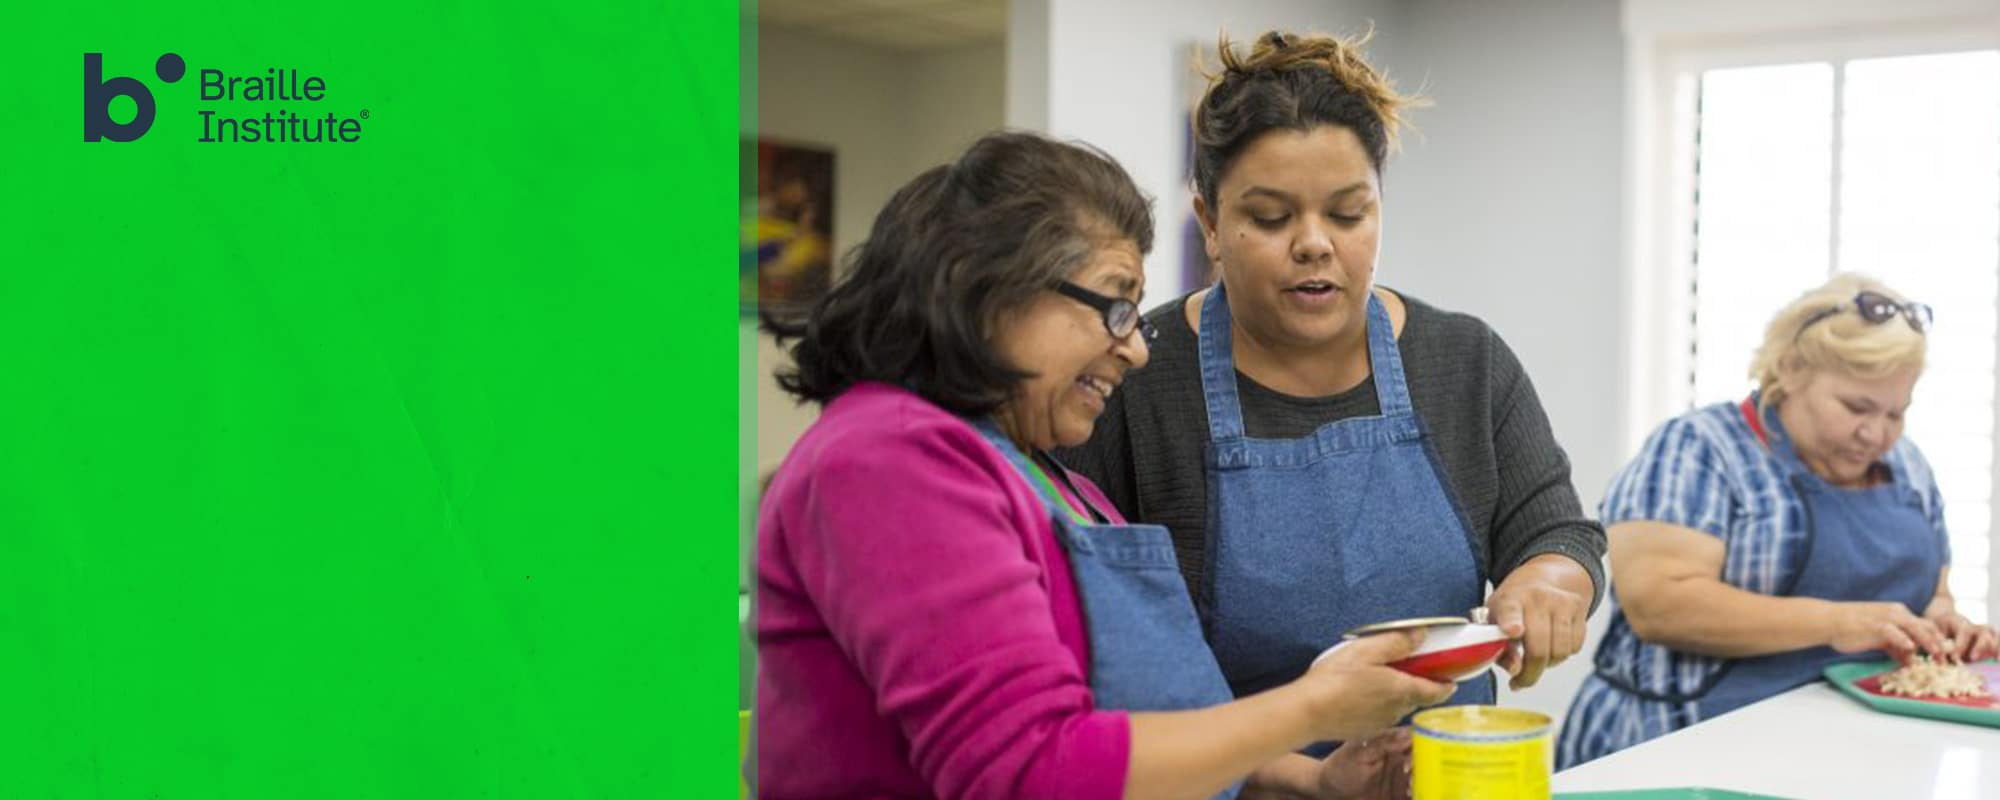 Braille Institute logo over green background and photo of a Braille Institute cooking instructor in the kitchen with several students